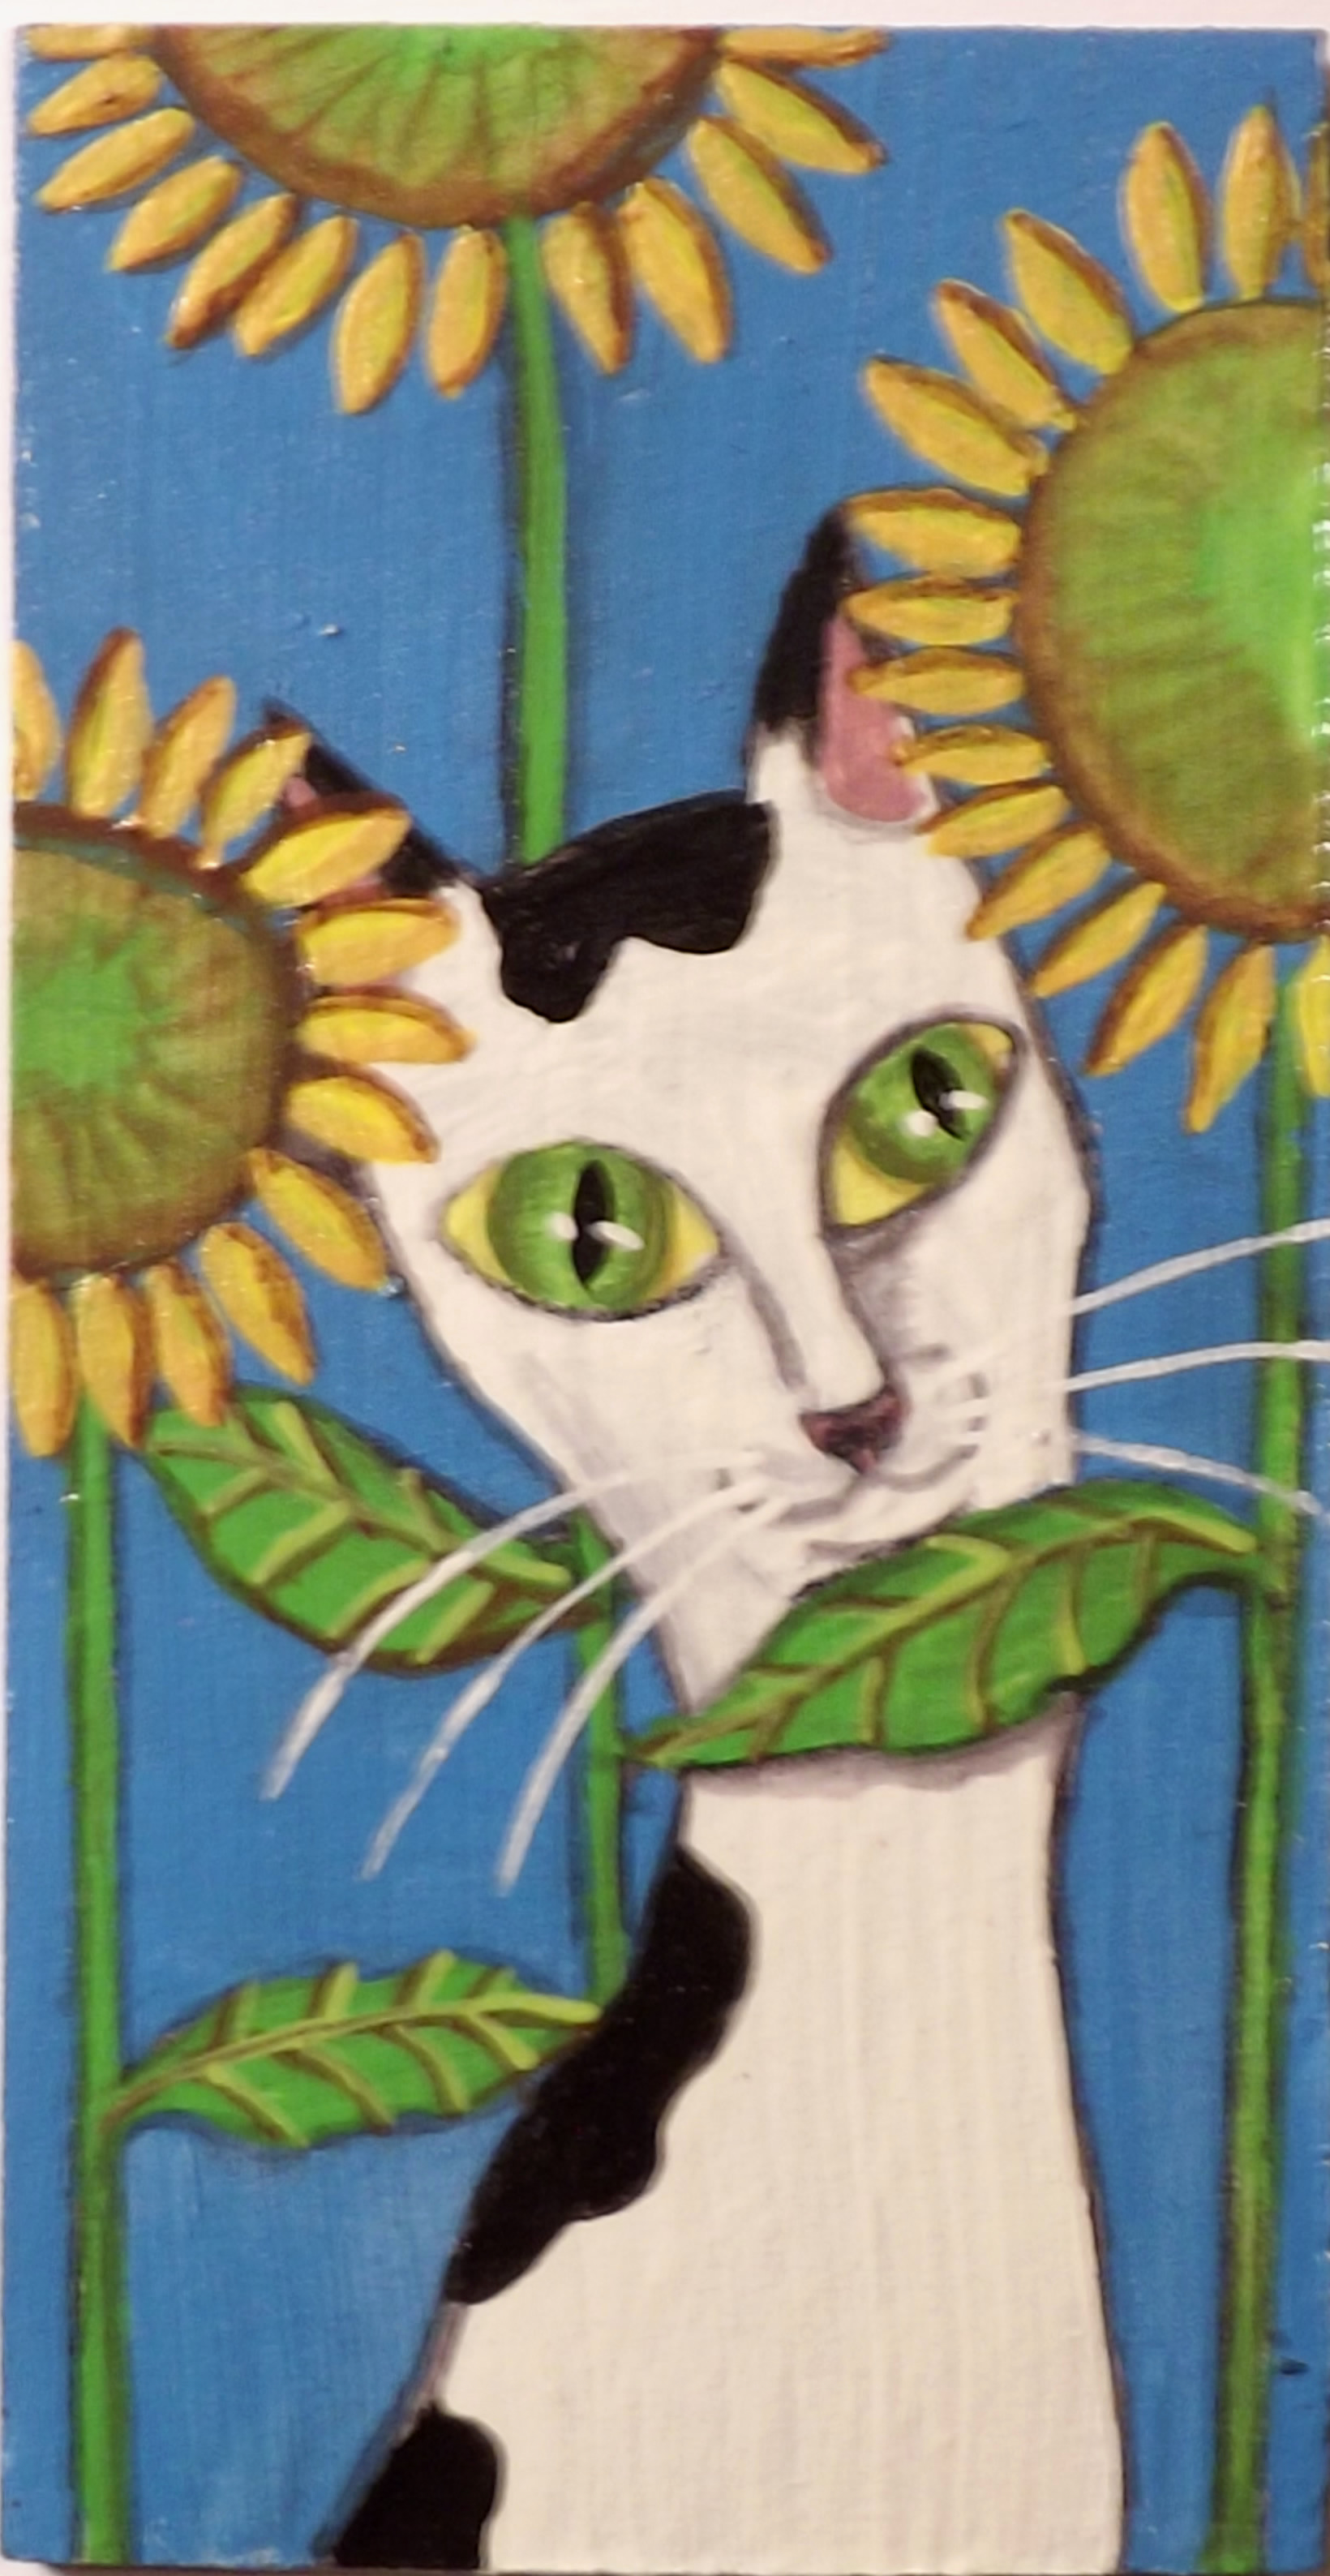 Black and White Cat with Sunflowers 2.5 by 4.5 original painting on wood